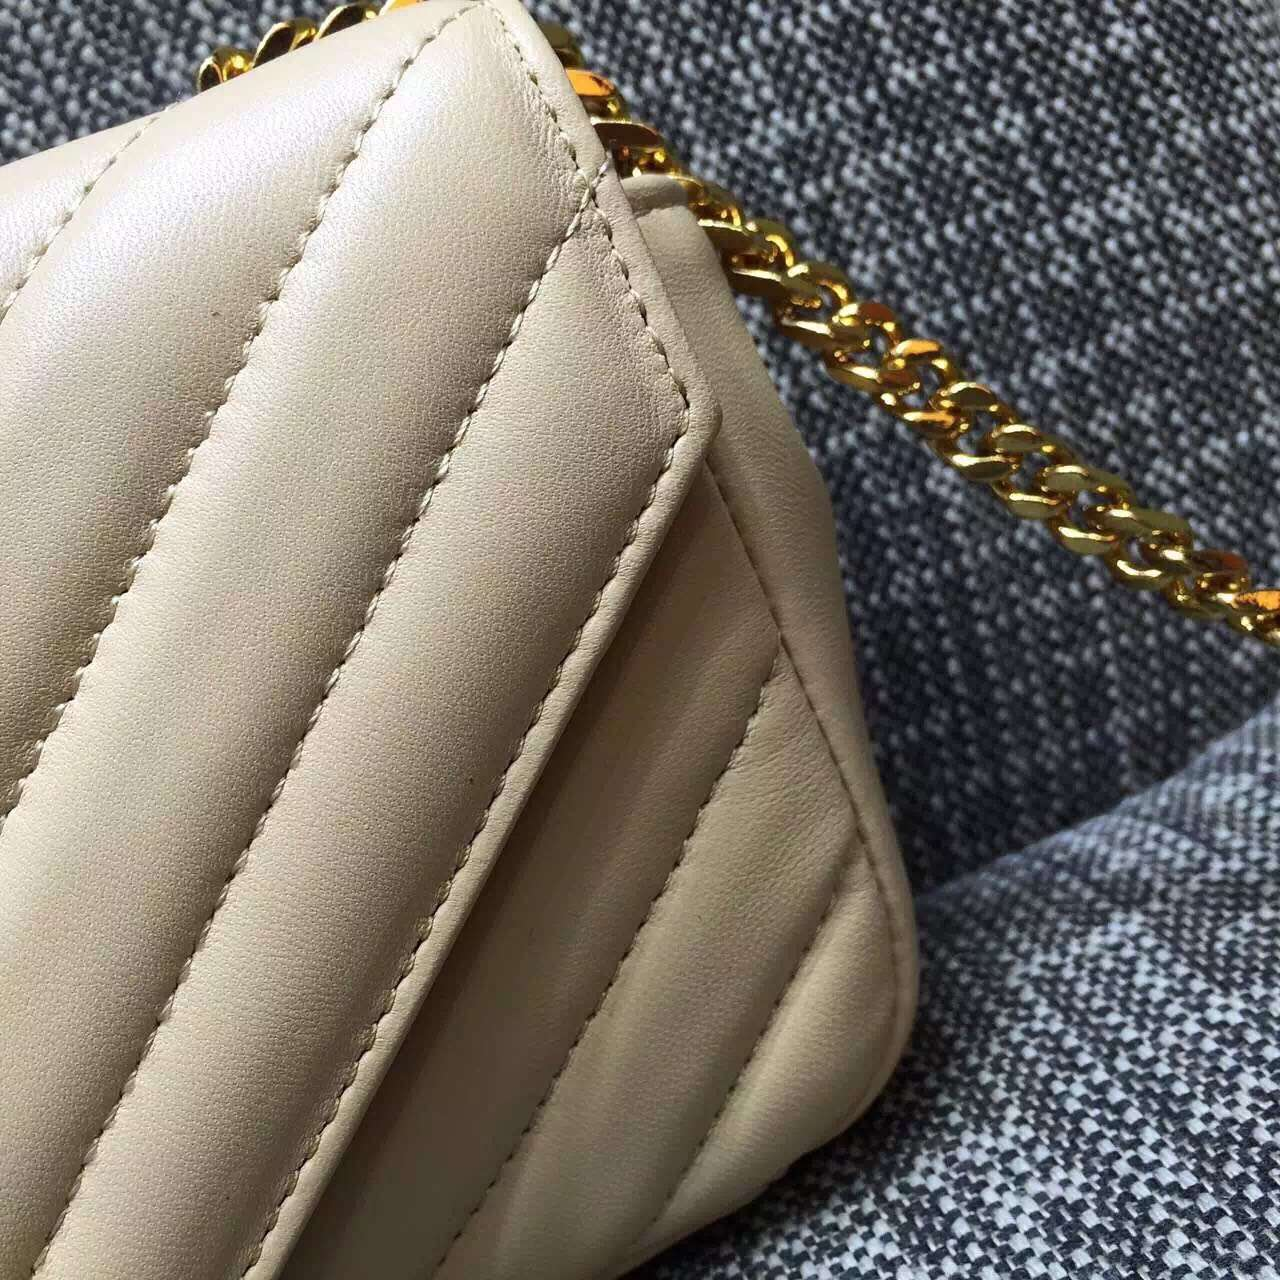 2015 Cheap YSL Out Sale with Free Shipping-Saint Laurent Classic Baby Monogram Satchel in Off-white Matelasse Leather with Gold Hardware